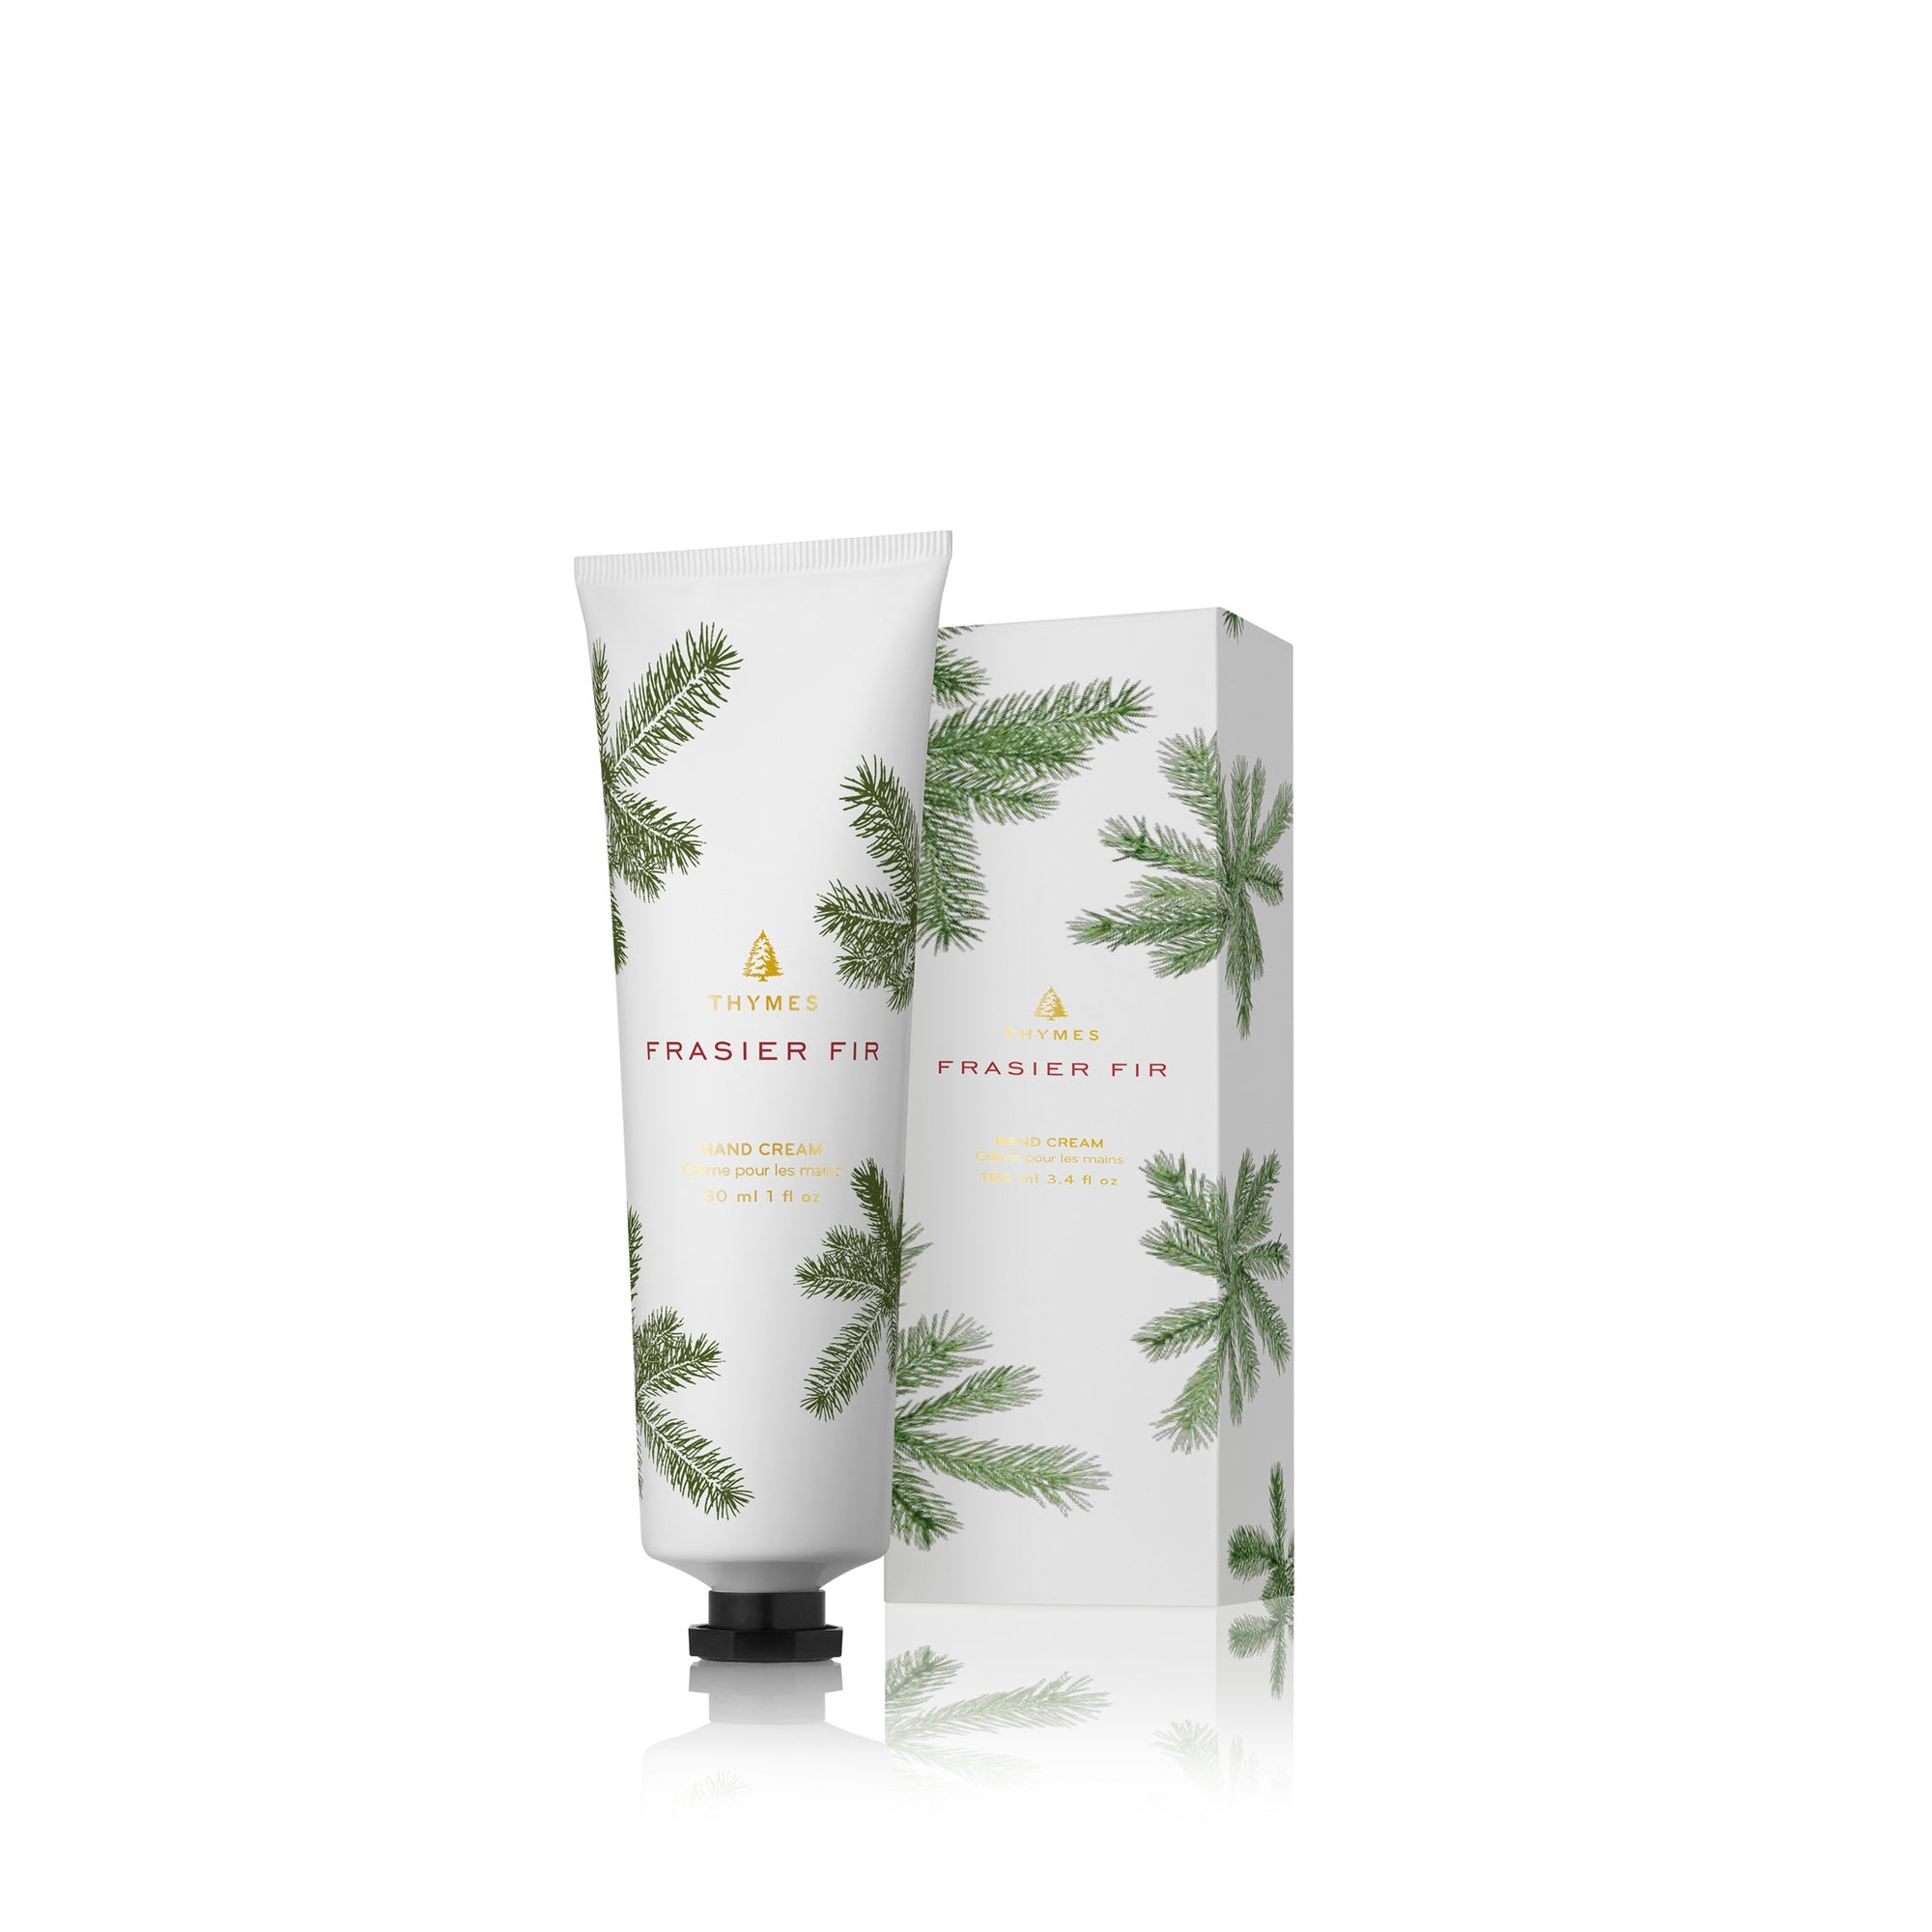 Thymes Frasier Fir Petite Hand Cream - Putti Fine Furnishings Canada